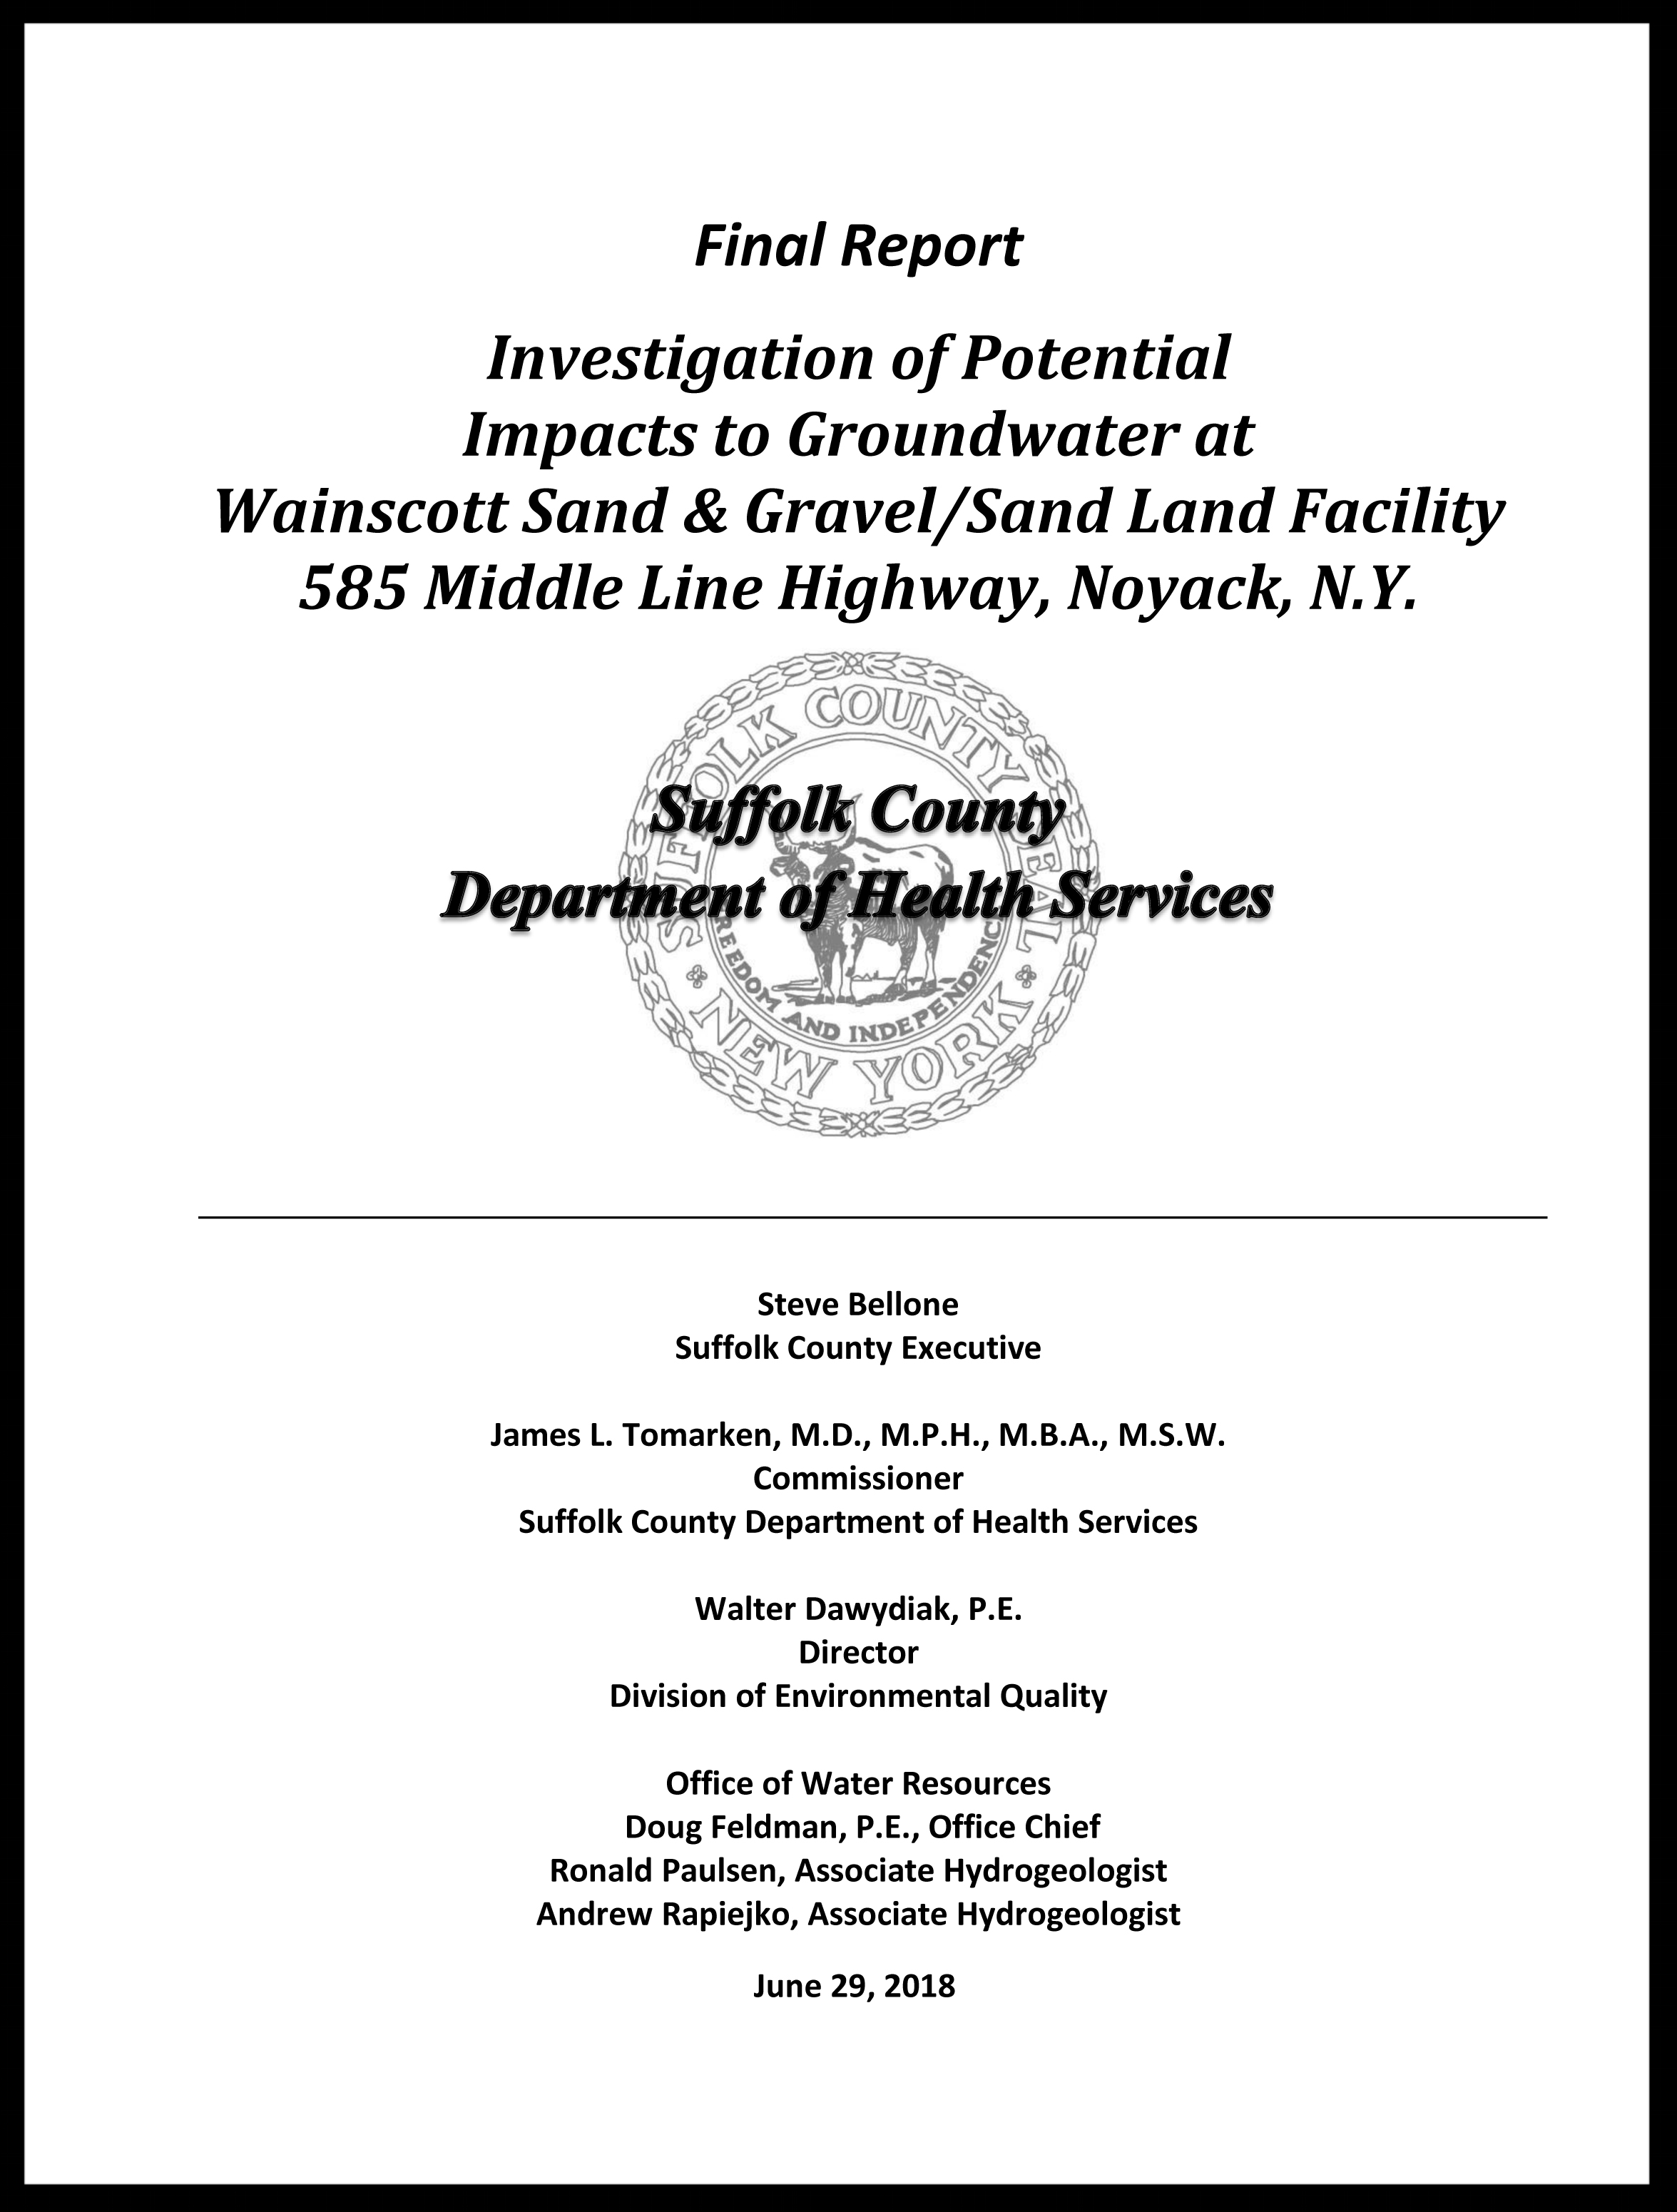 Report PDF  The Suffolk County Health Department's final report on the  Investigation of Potential Impacts to Groundwater at Wainscott Sand & Gravel/Sand Land Facility, 585 Middle Line Highway, Noyack, N.Y.